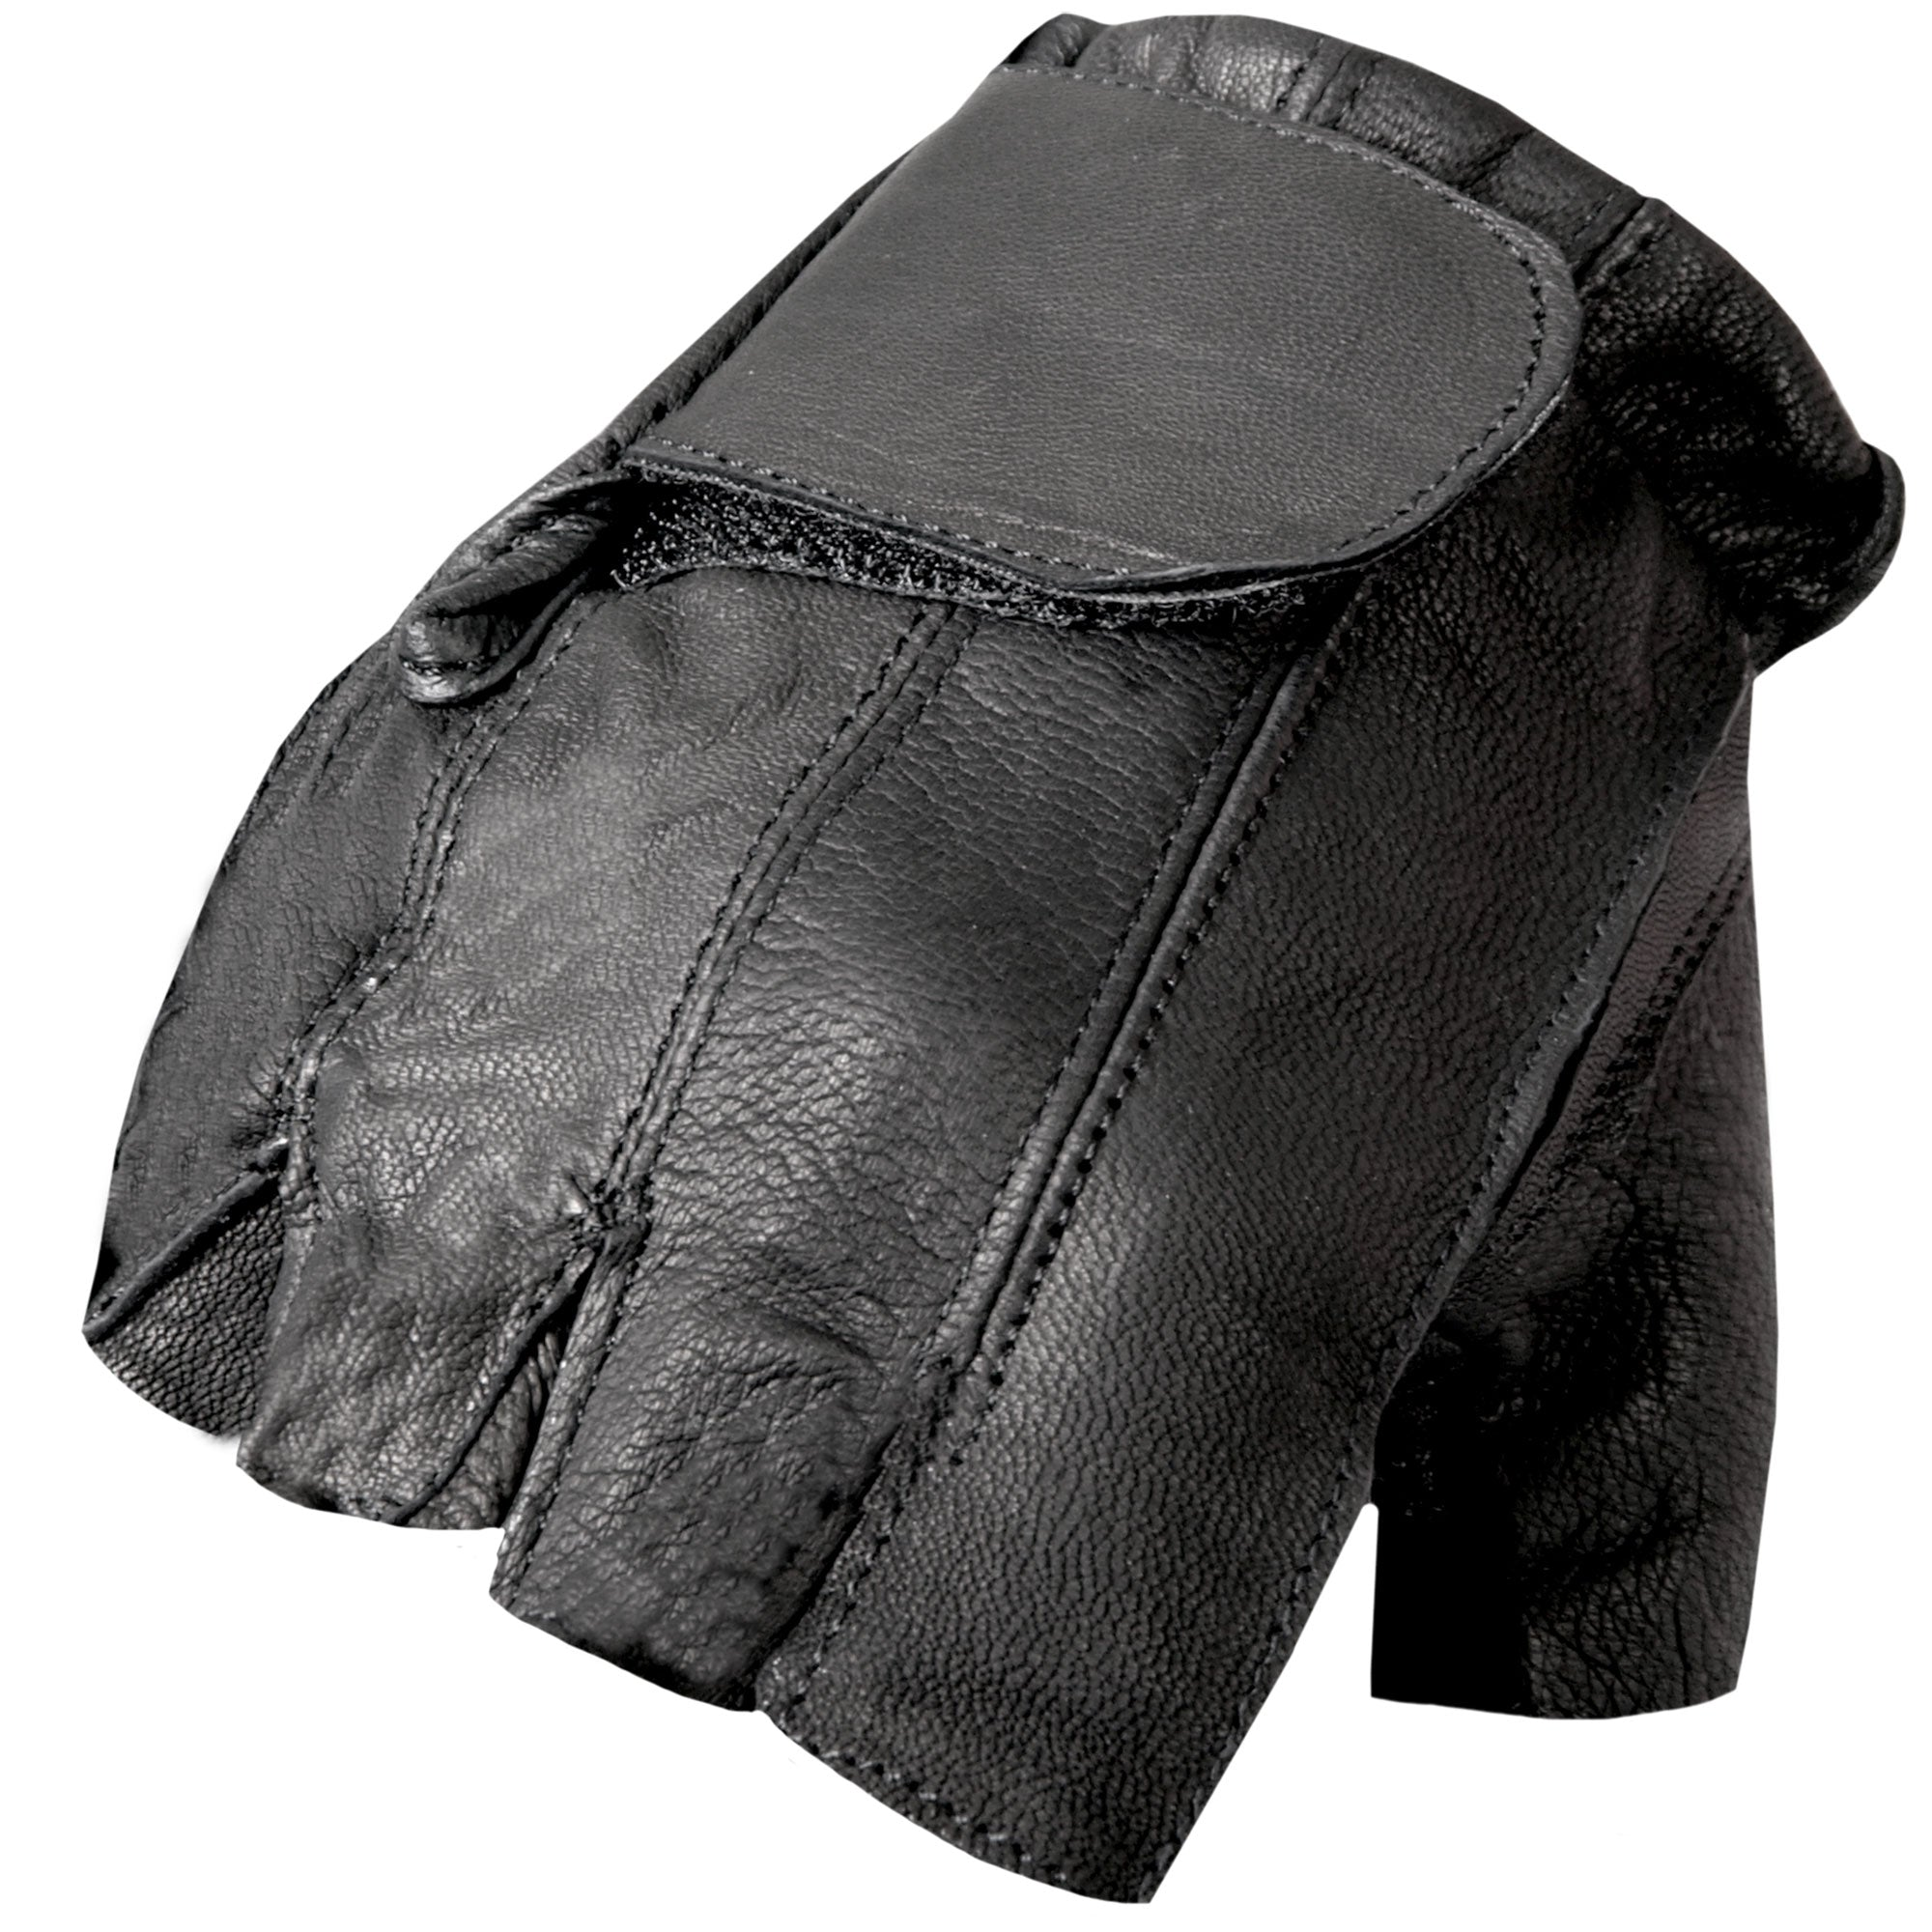 Hot Leathers Naked Leather Fingerless Glove